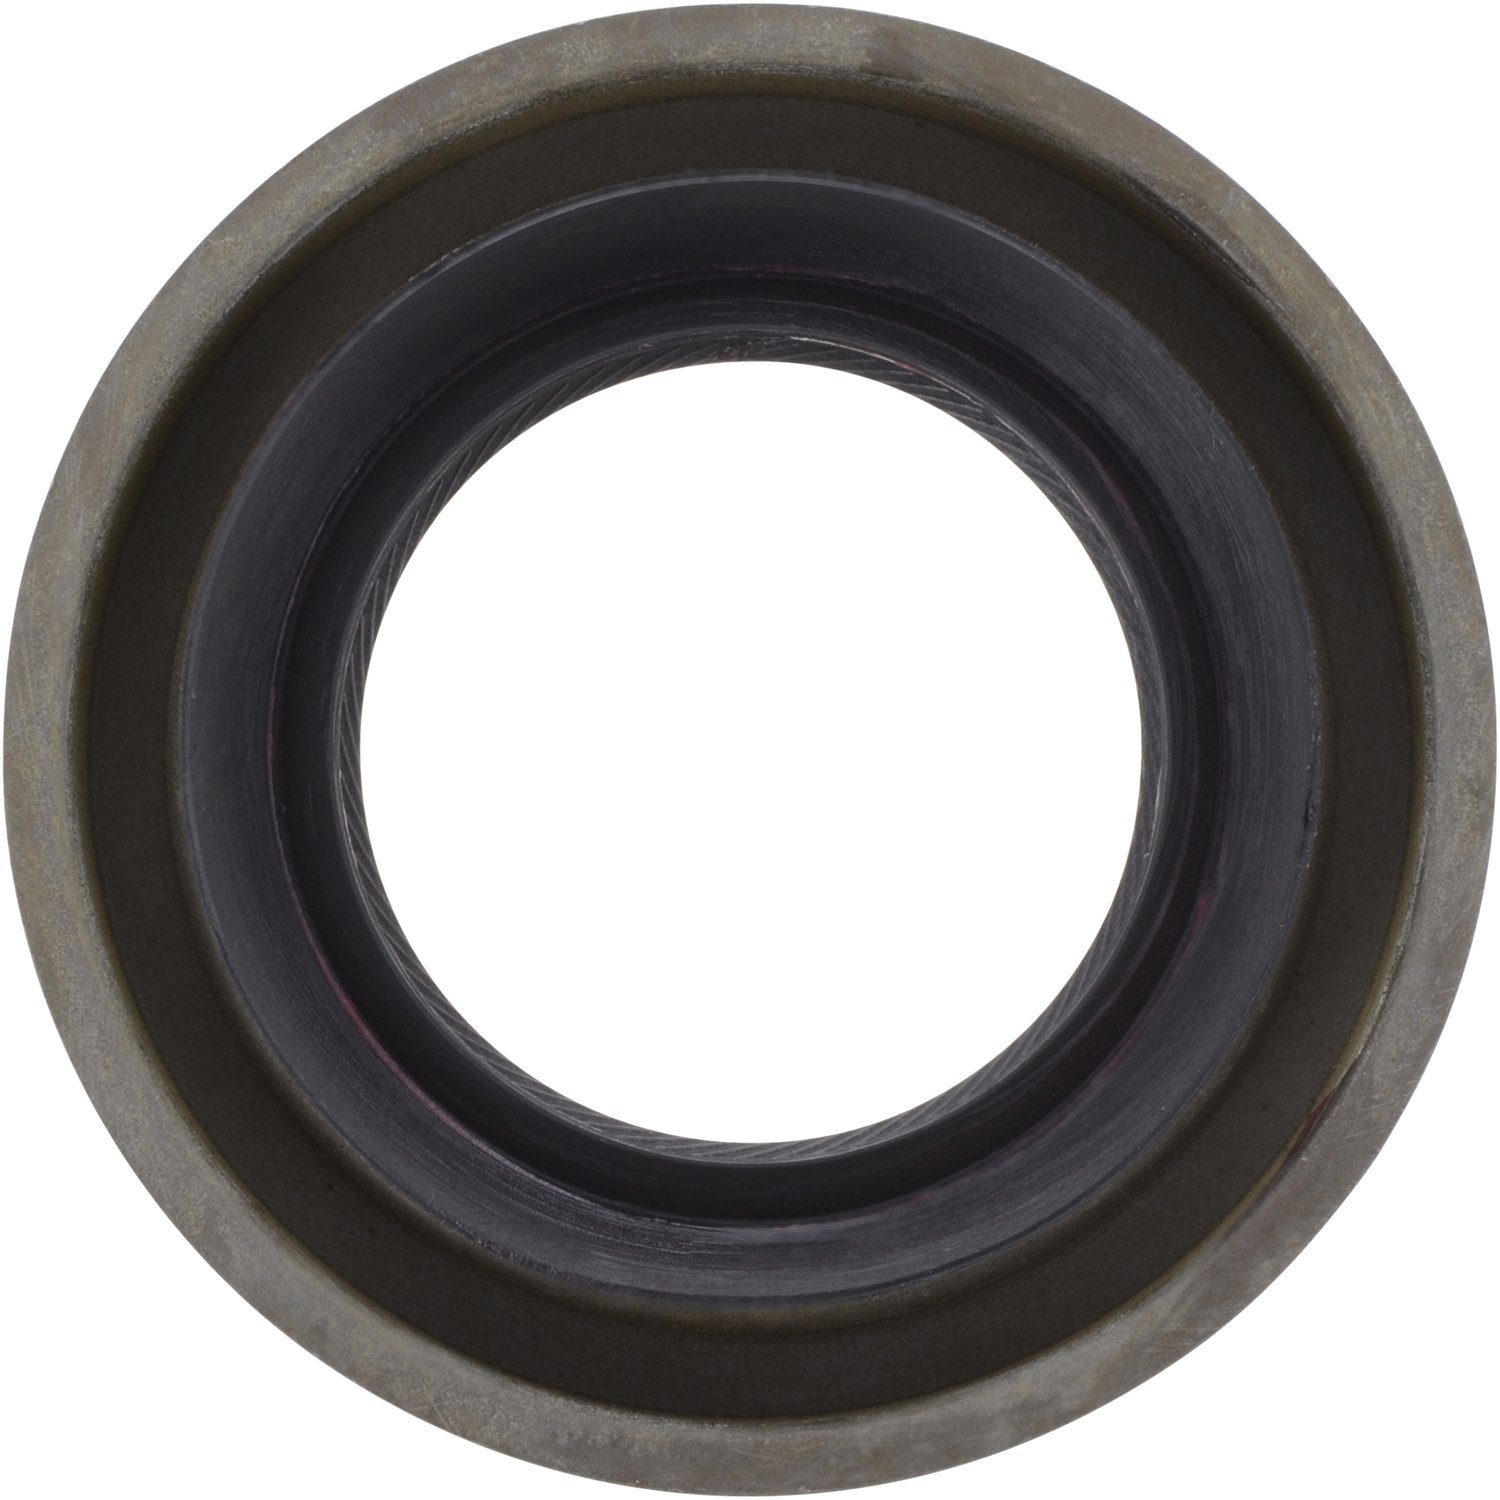 Spicer 2004670 Pinion Oil Seal